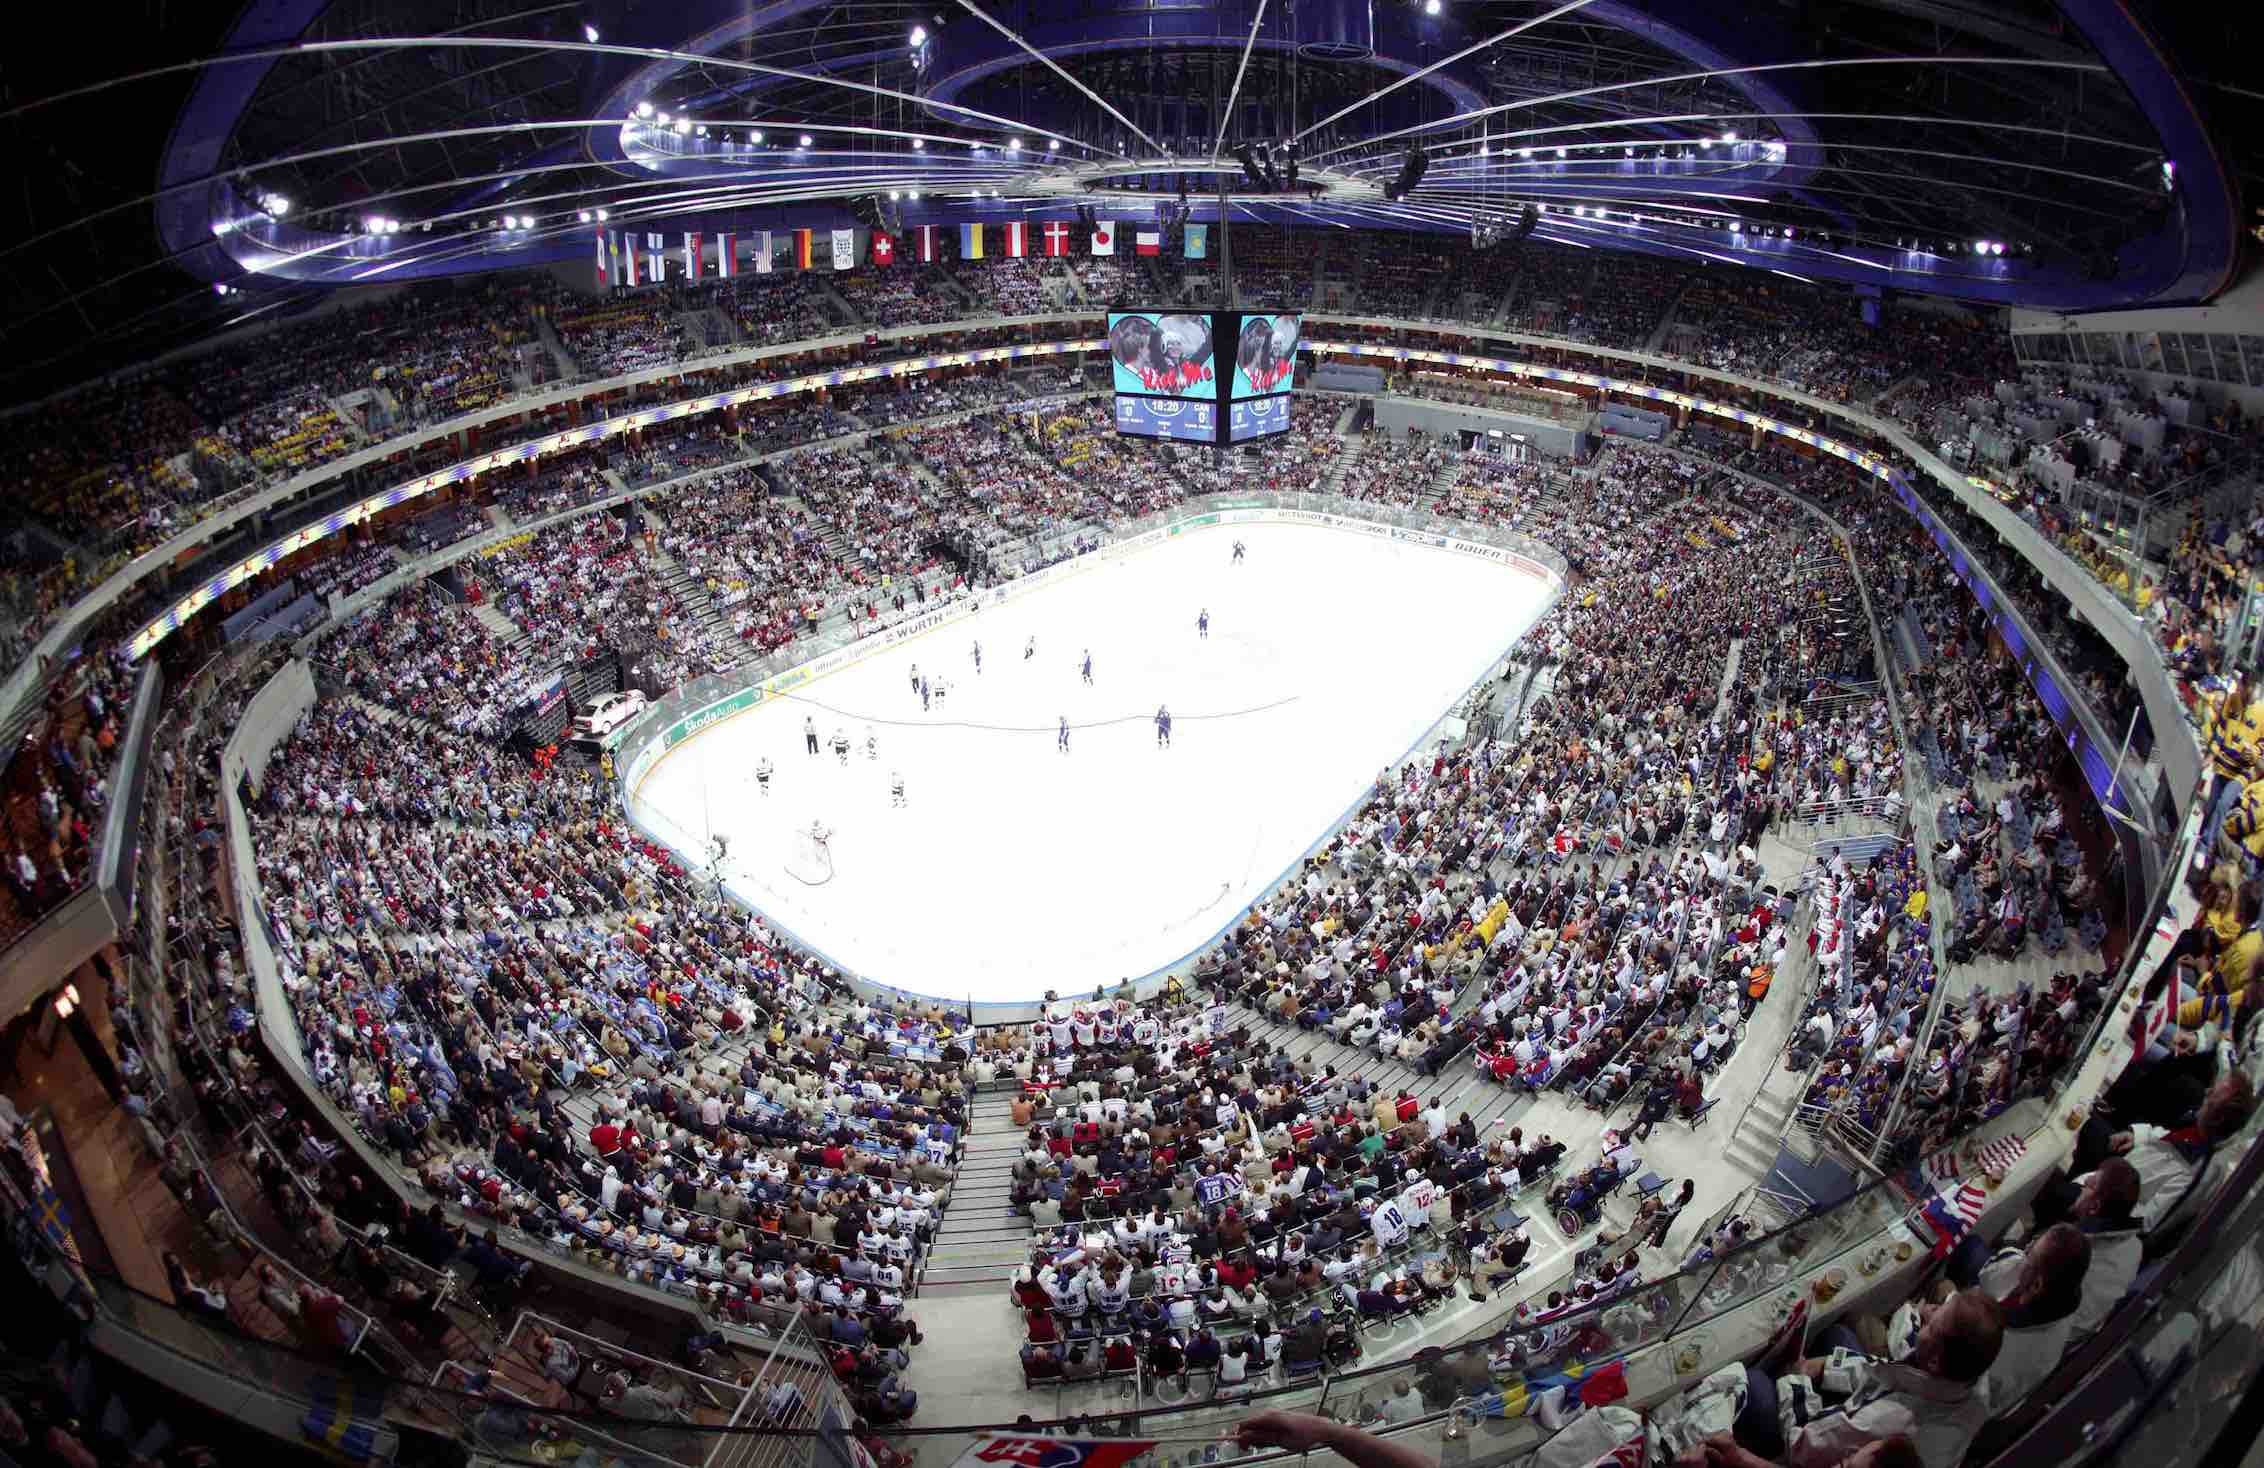 Sportradar will monitor a total of three flagship tournaments per year from 2015 to 2017 for the IIHF ©Sportradar